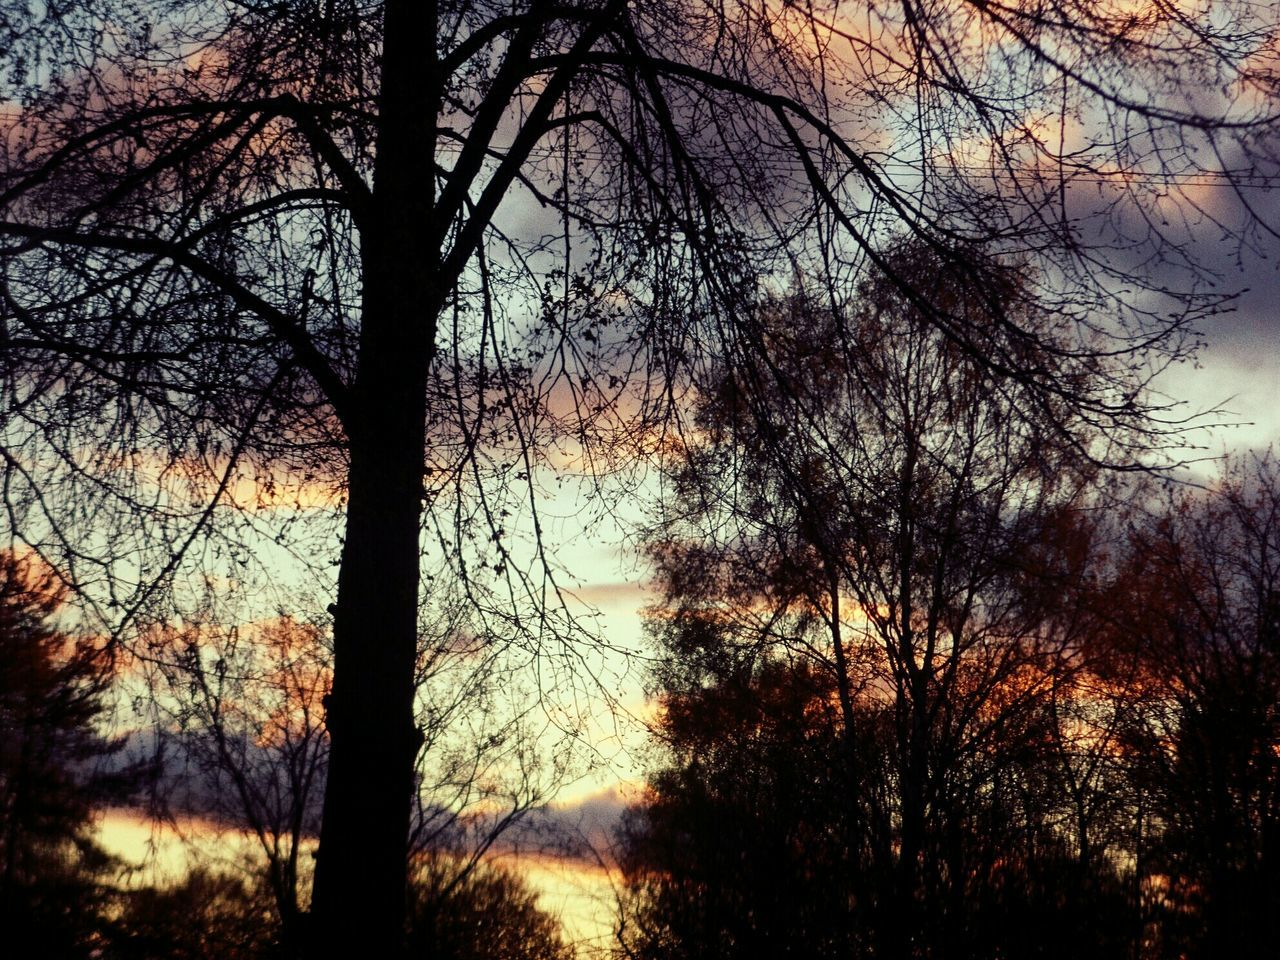 tree, bare tree, nature, tranquility, branch, forest, beauty in nature, tree trunk, tranquil scene, outdoors, no people, sky, silhouette, low angle view, scenics, day, landscape, bleak